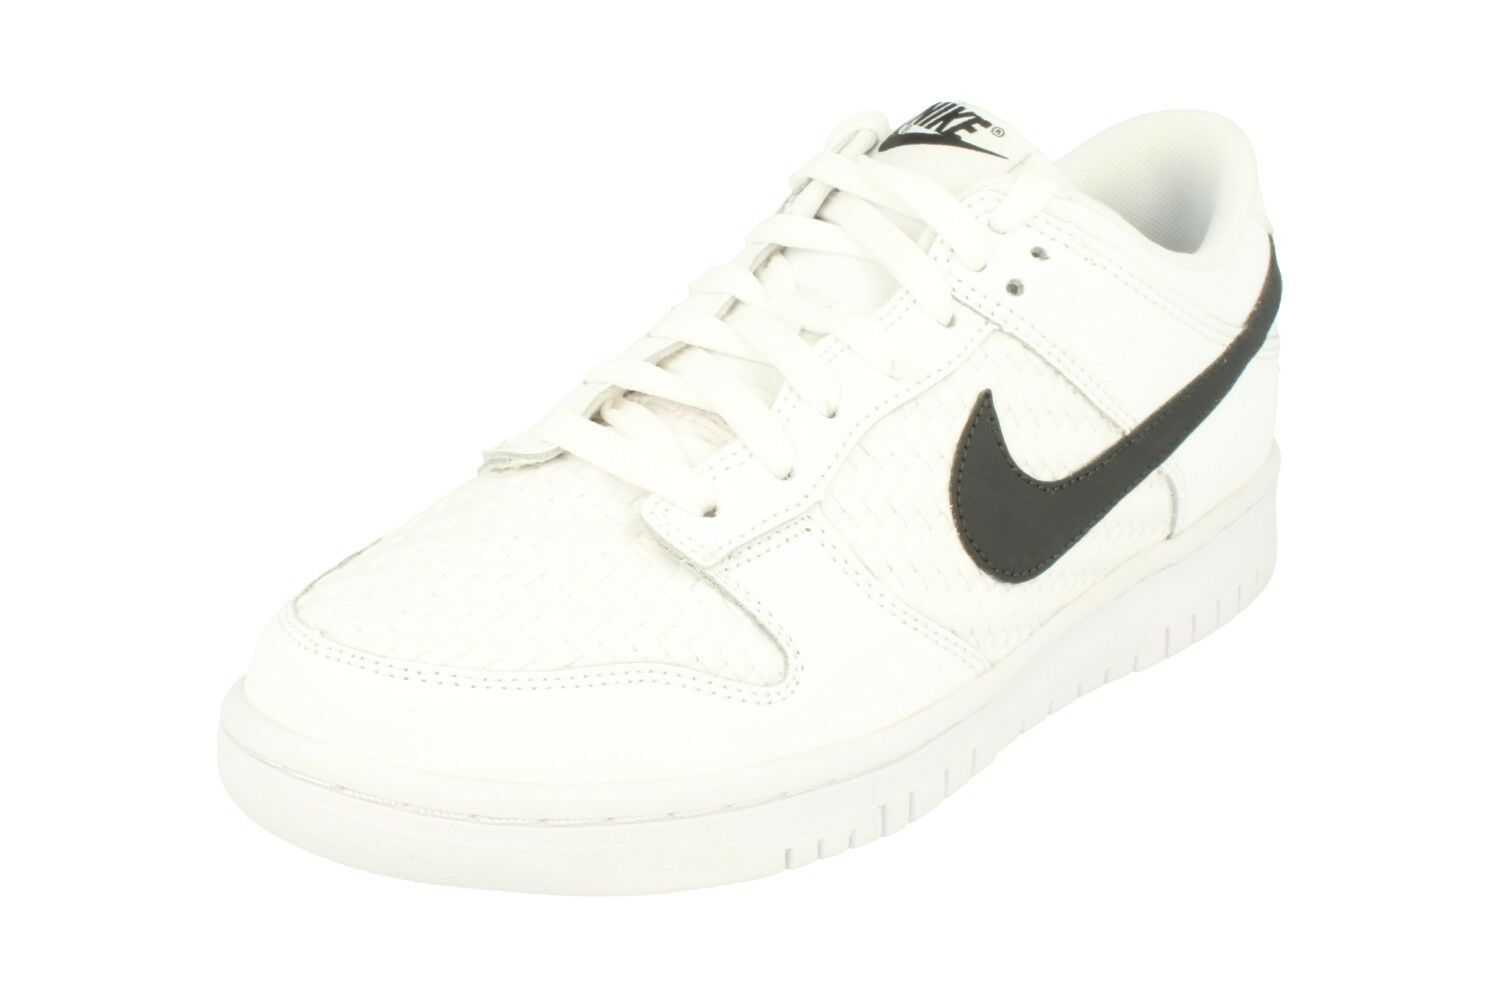 new product c590b e35bd ... promo code nike dunk trainers low hombre trainers dunk 904234  zapatillas zapatos 102 7f5b55 34595 47d64